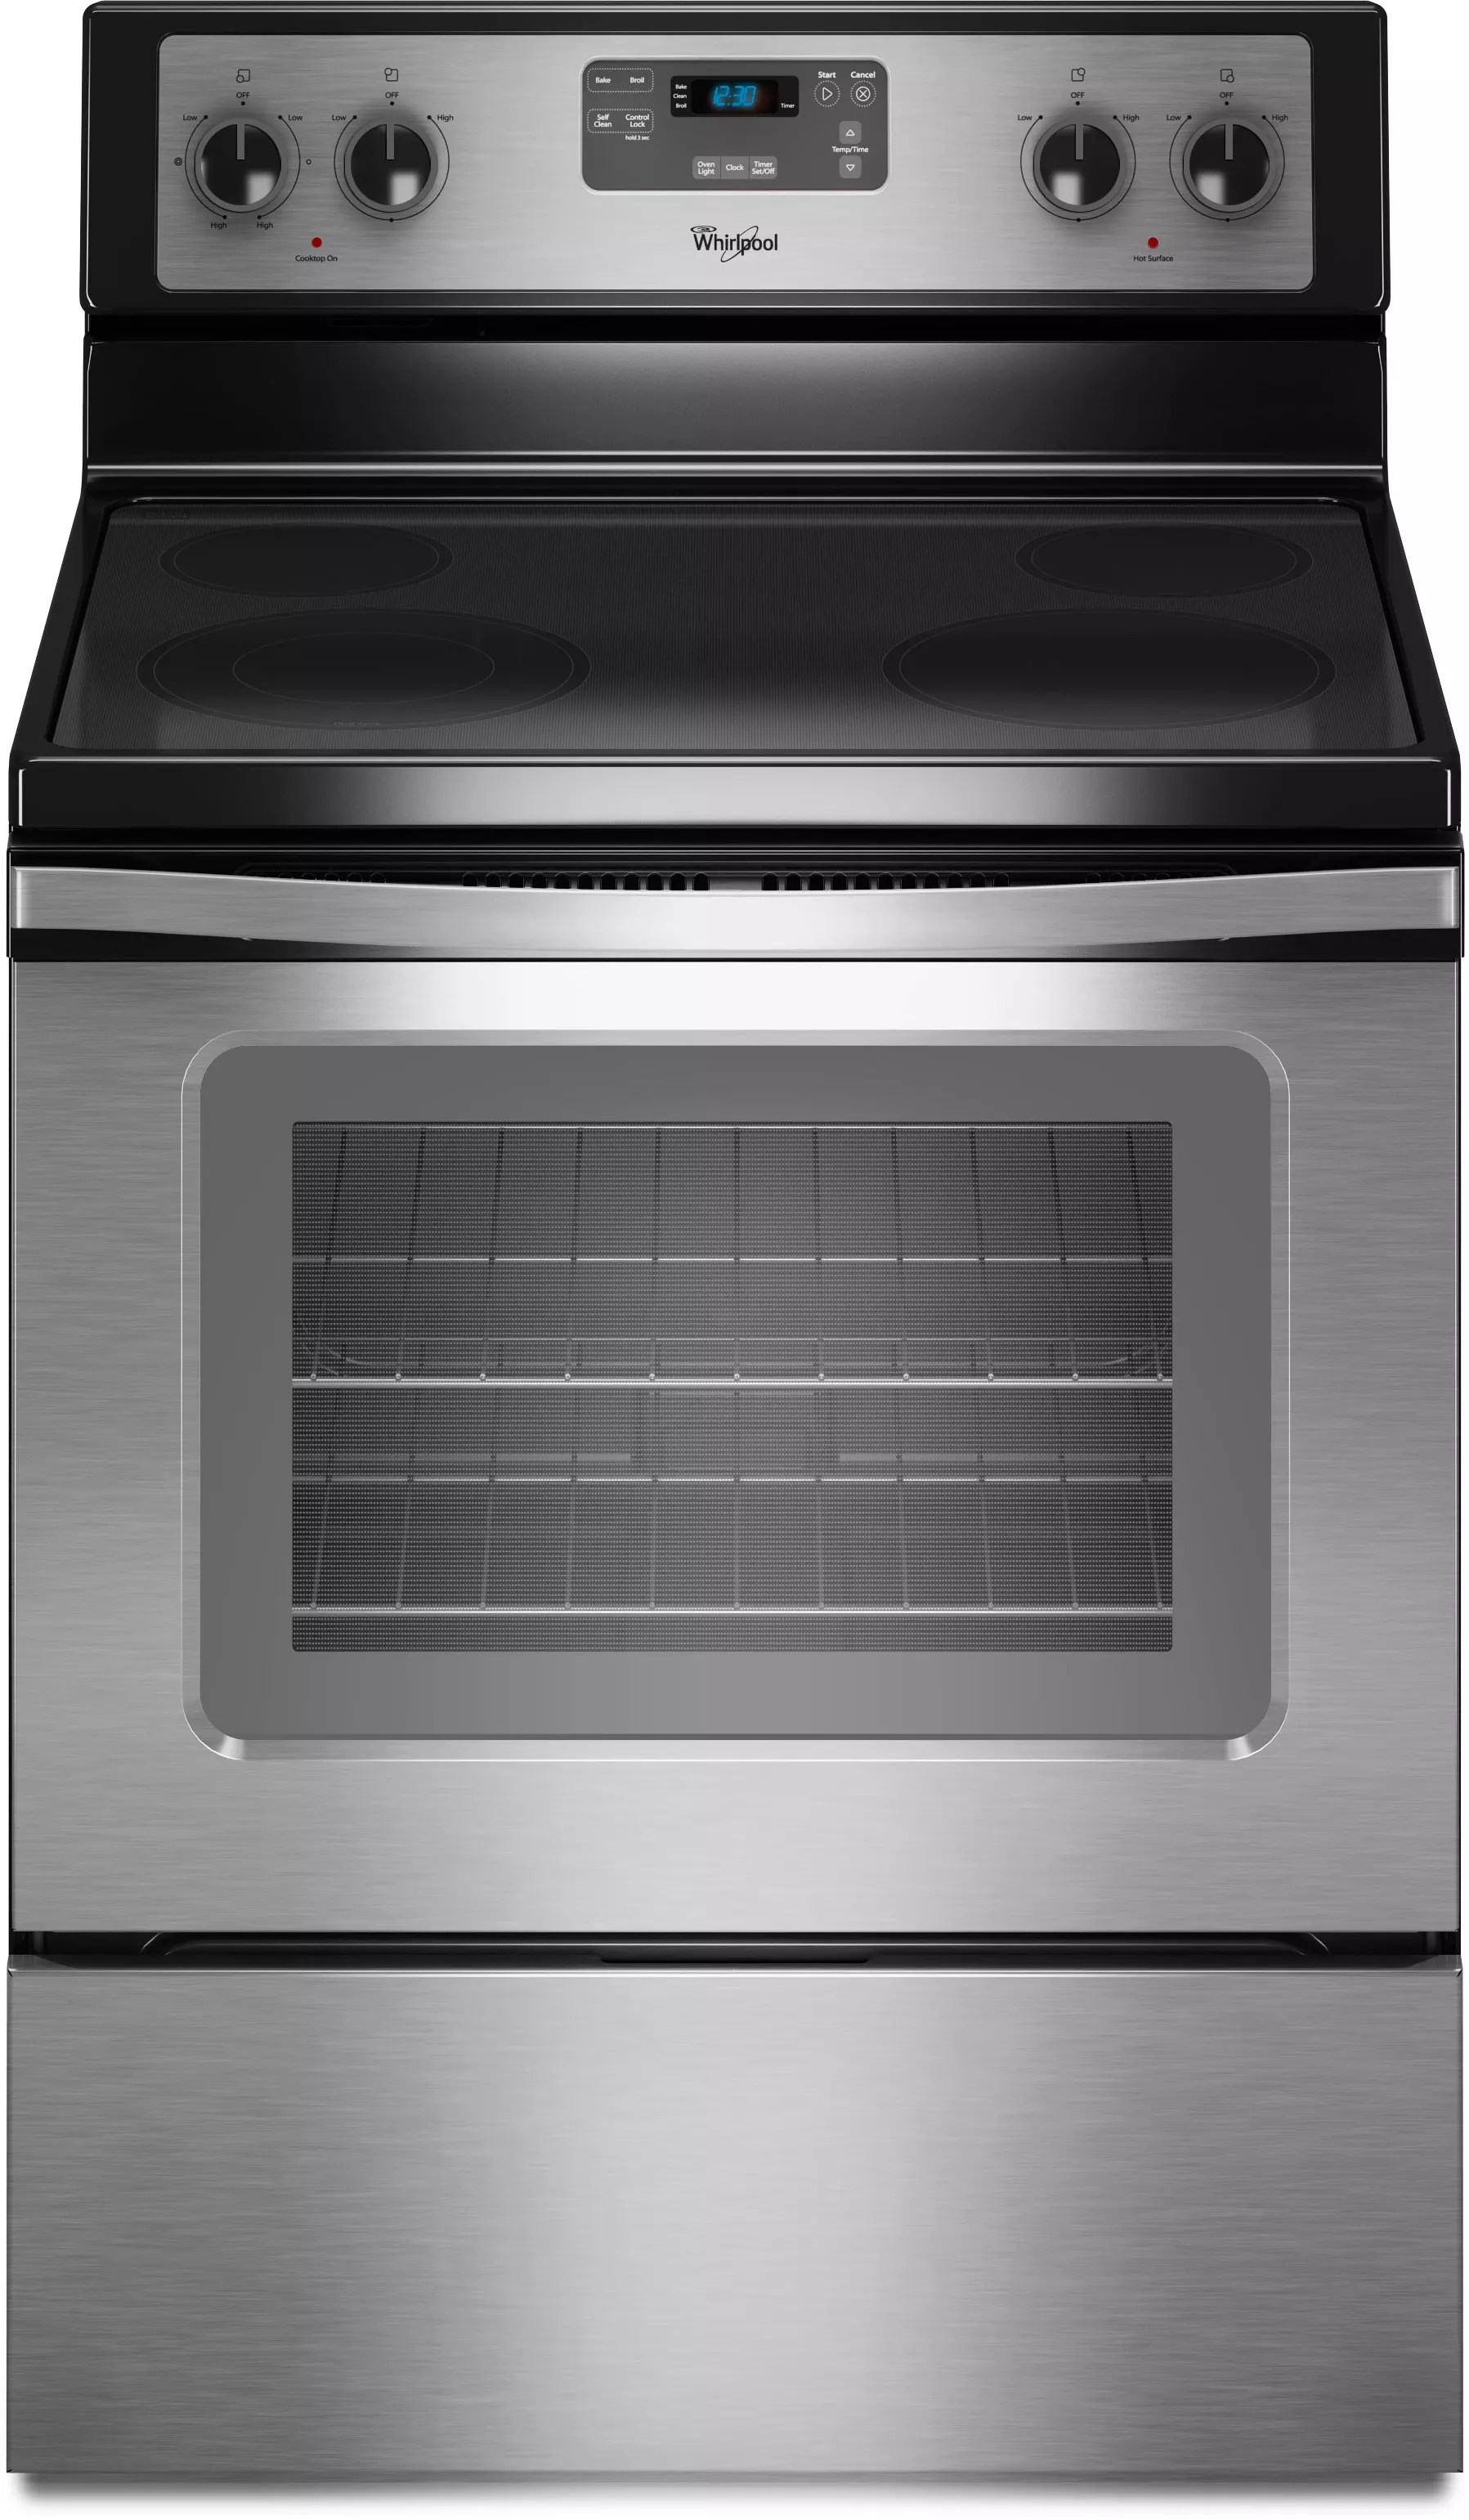 Oven Whirlpool Whirlpool Wfe510s0as 30 Inch Freestanding Electric Range